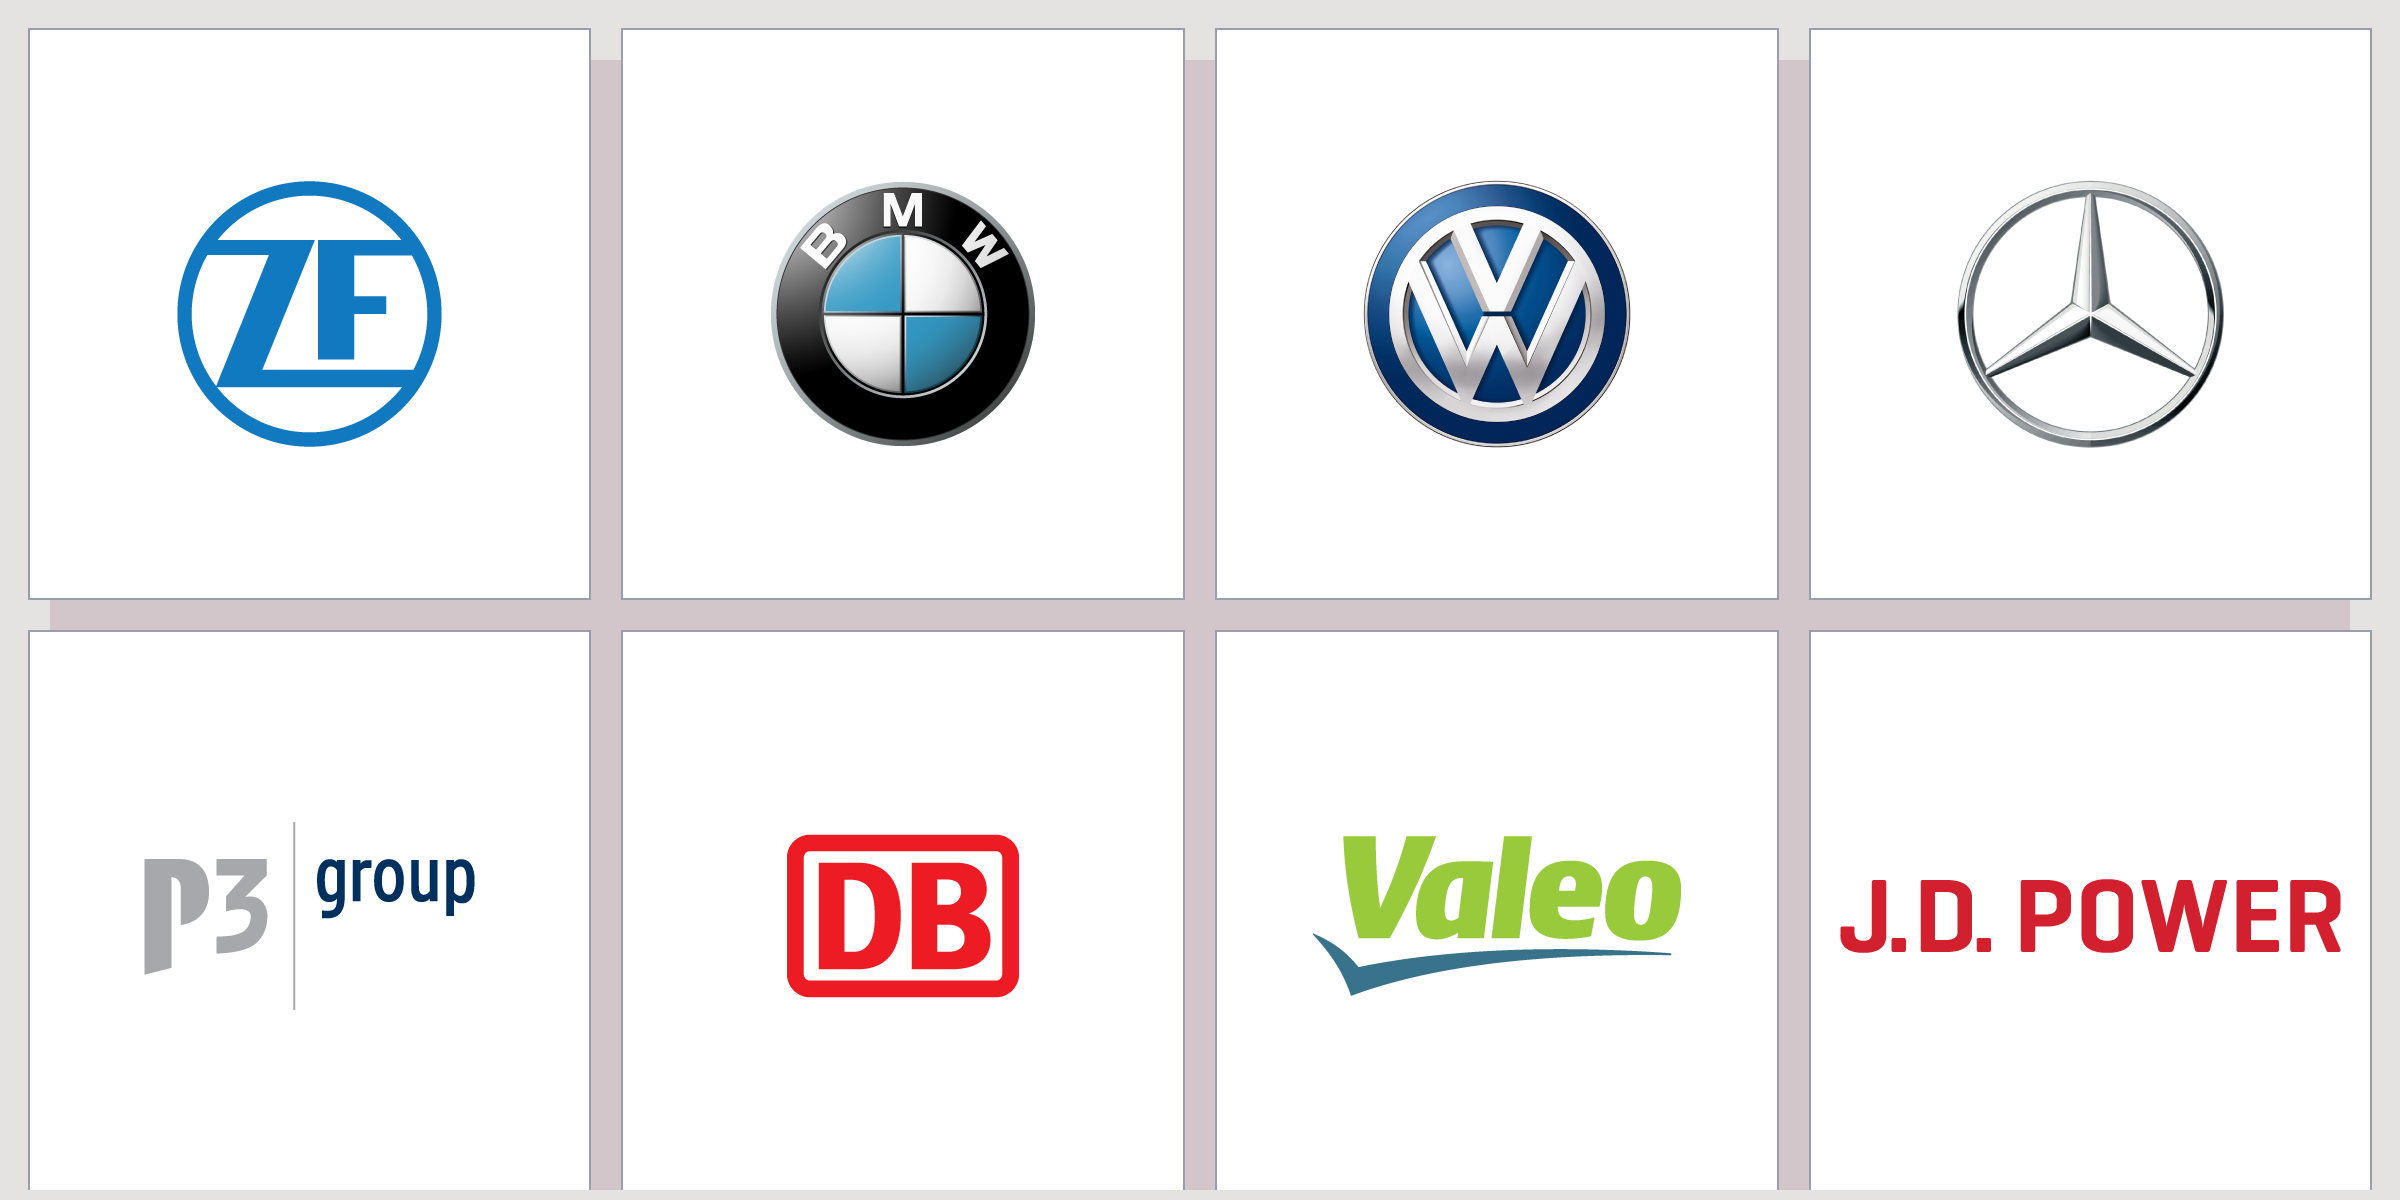 00-Projects-and-Logos-v29-02-Logos.png